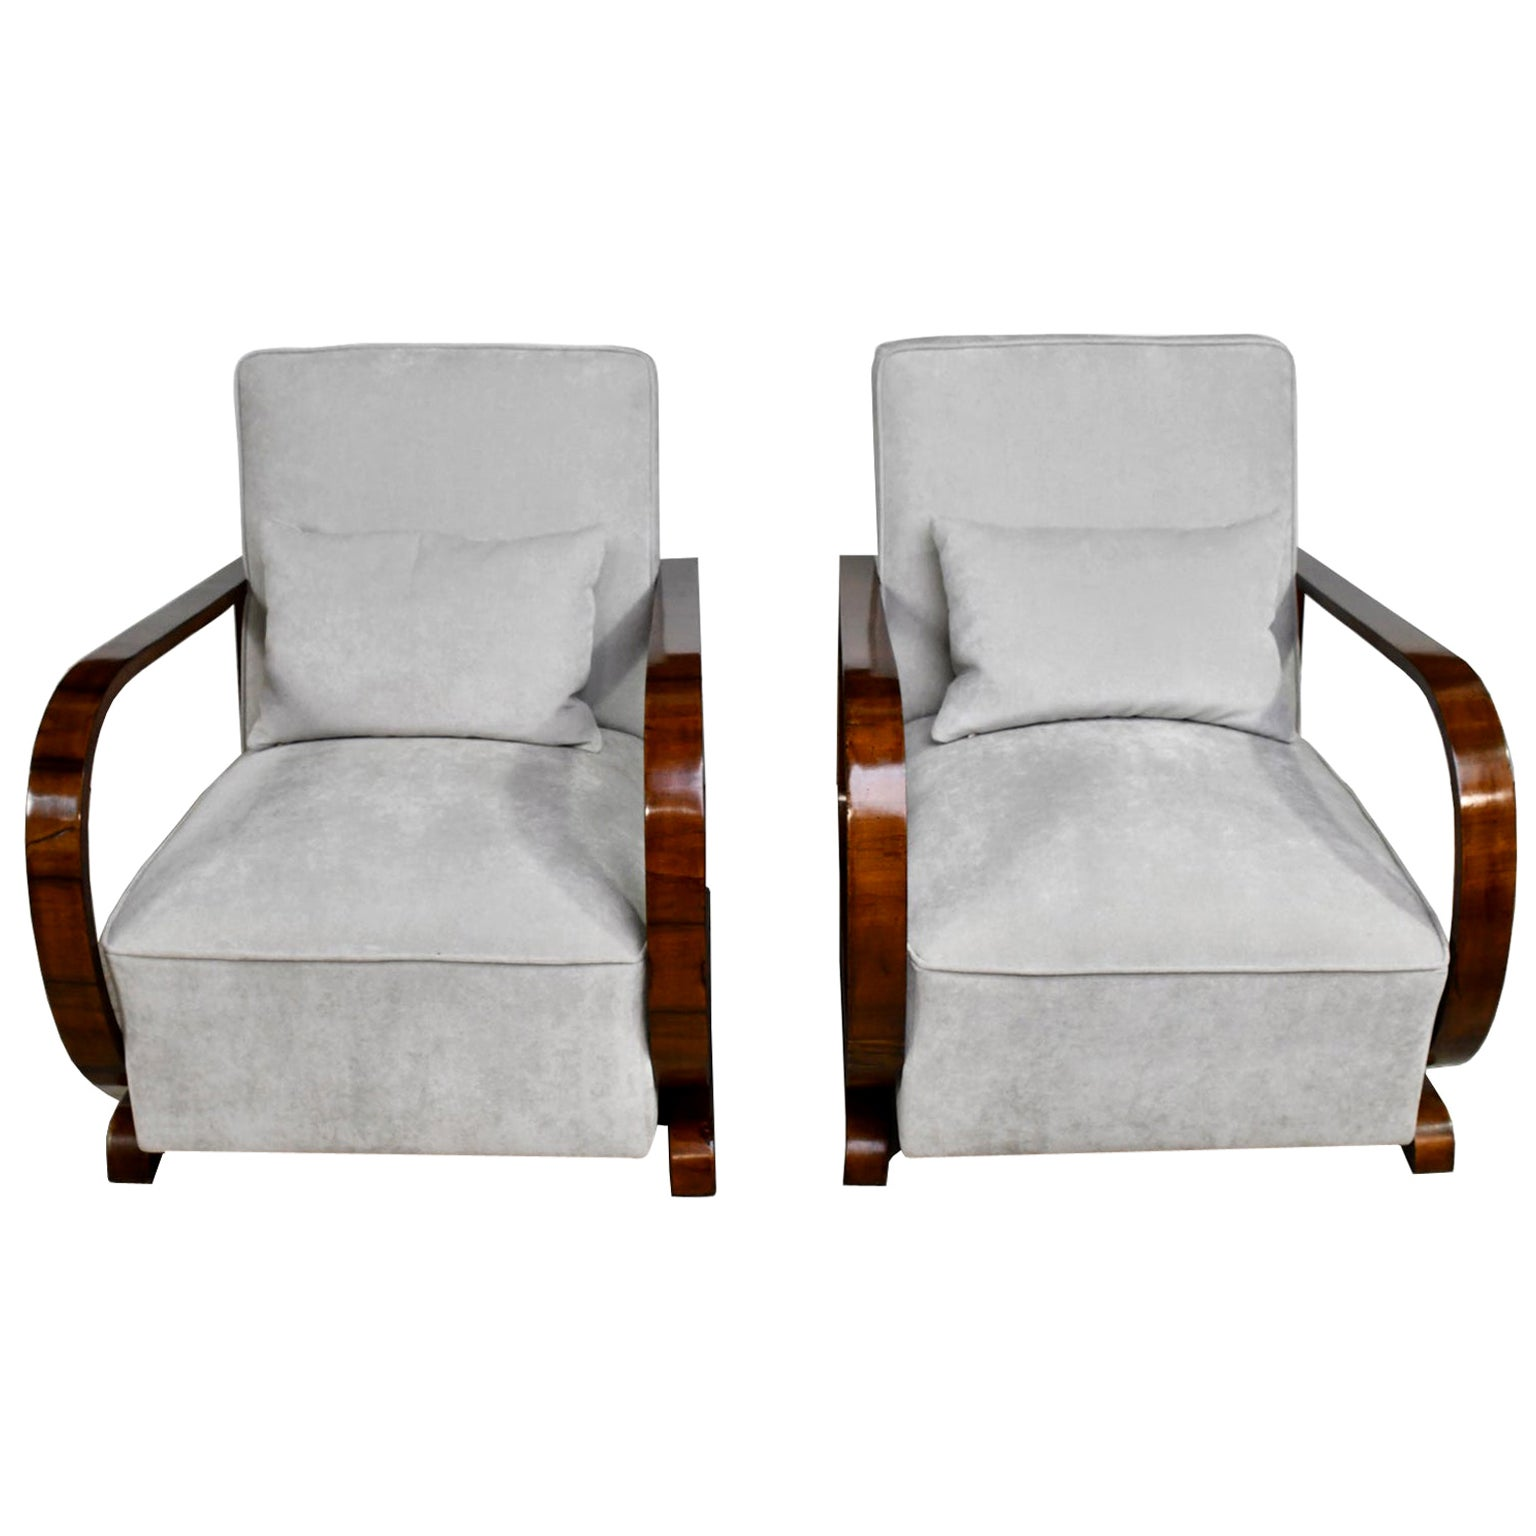 Pair of Viennese Art Deco Armchairs in Walnut with Grey Upholstery, Austria